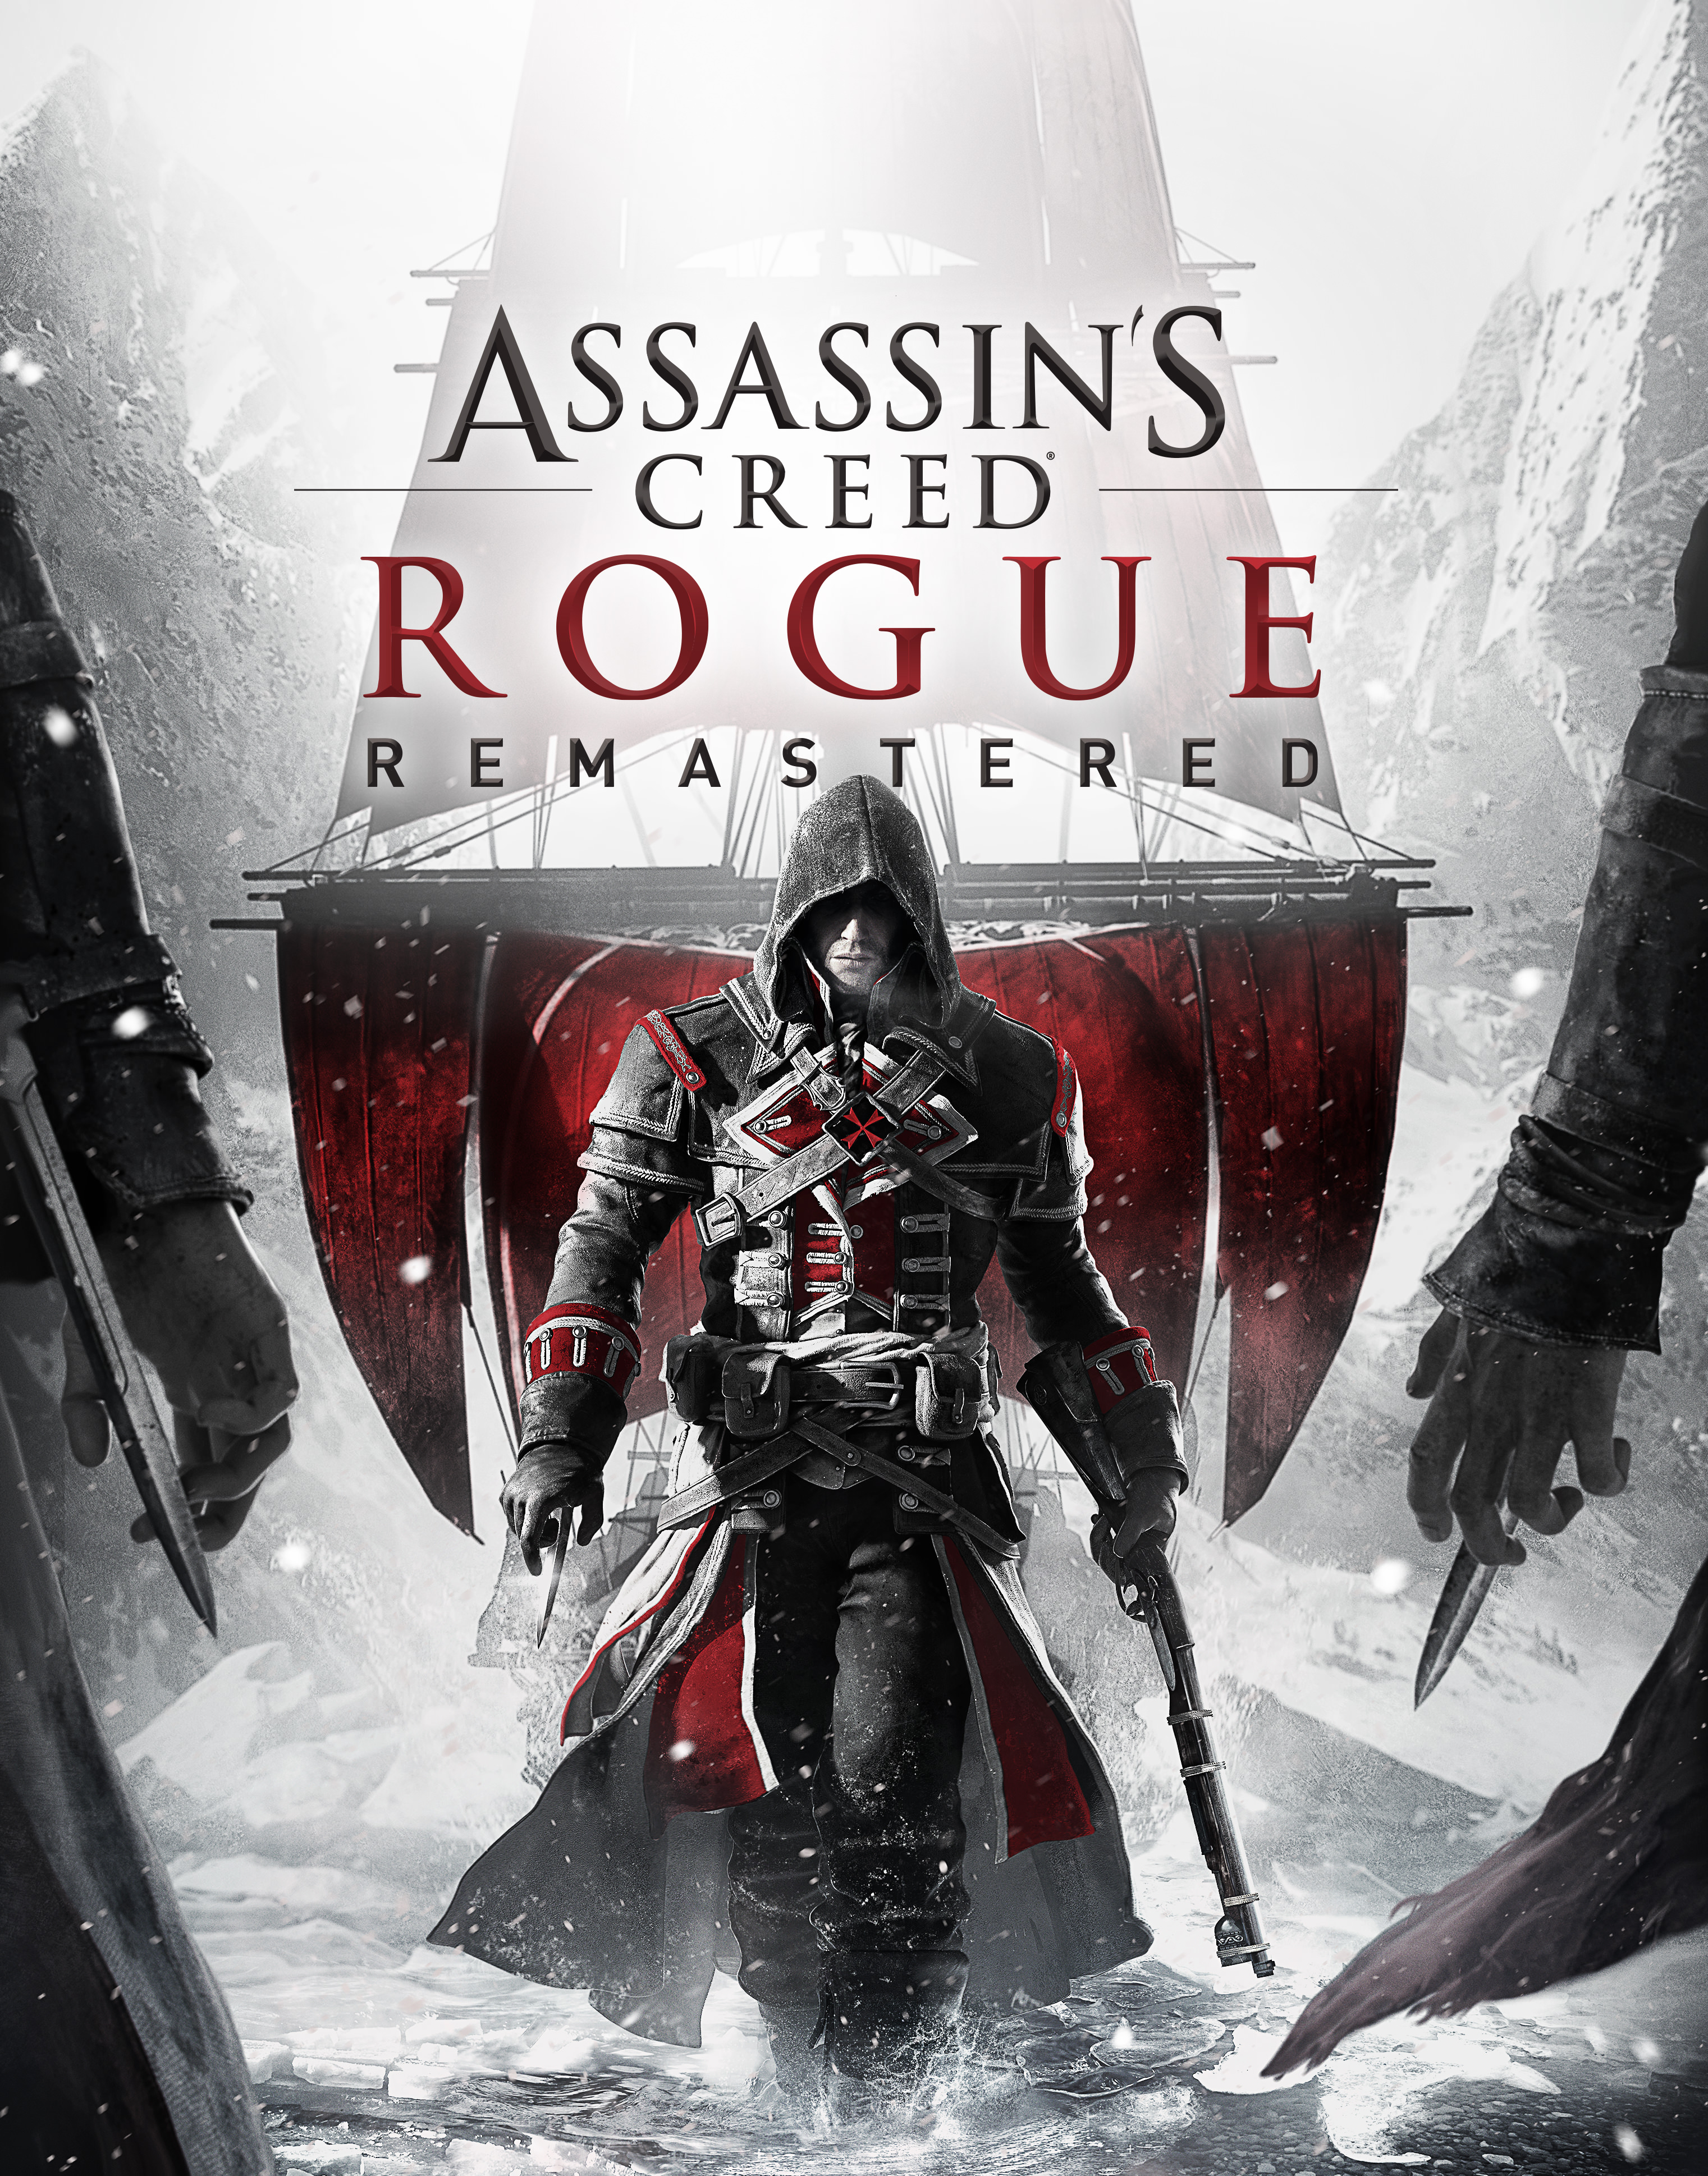 Assassin's Creed Rogue Remastered